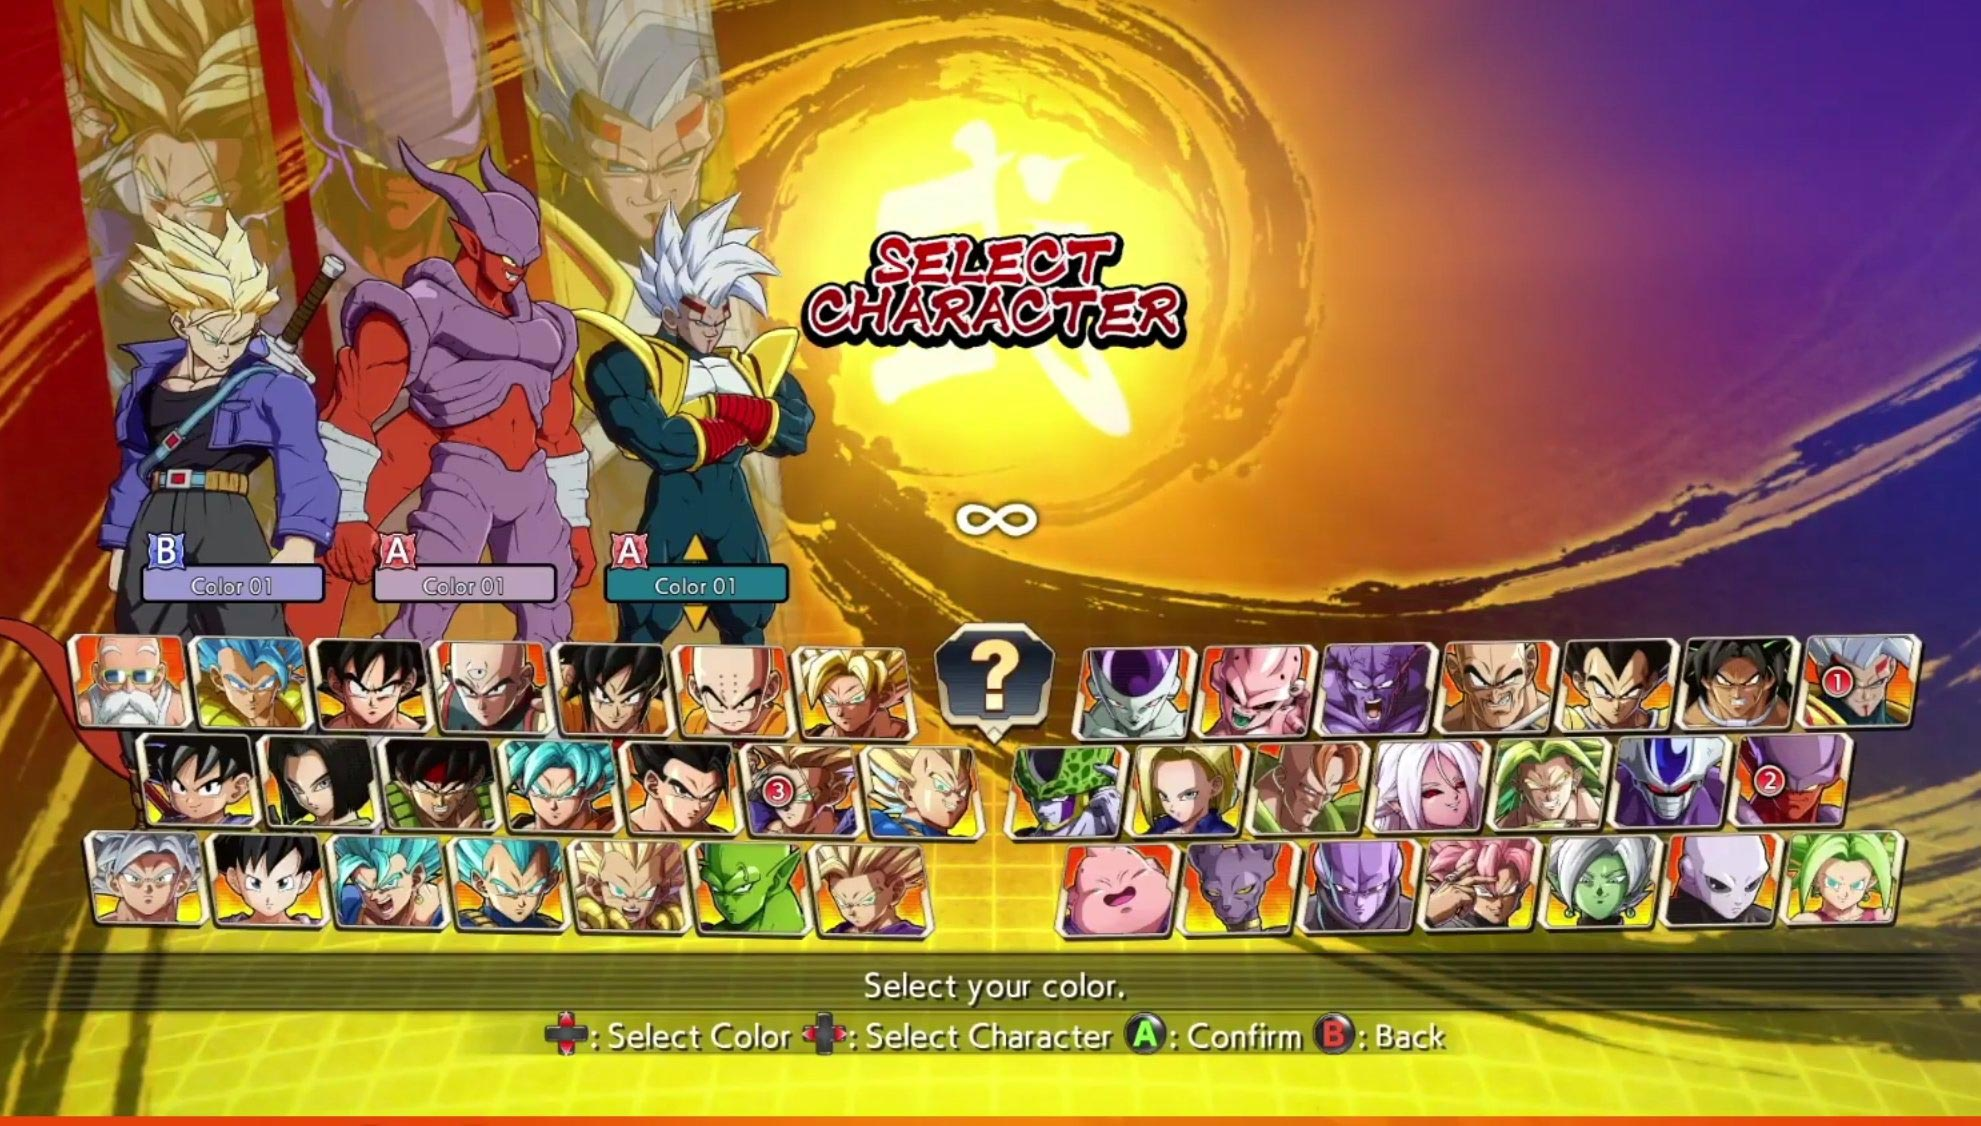 Super Baby Character Select 1 out of 1 image gallery